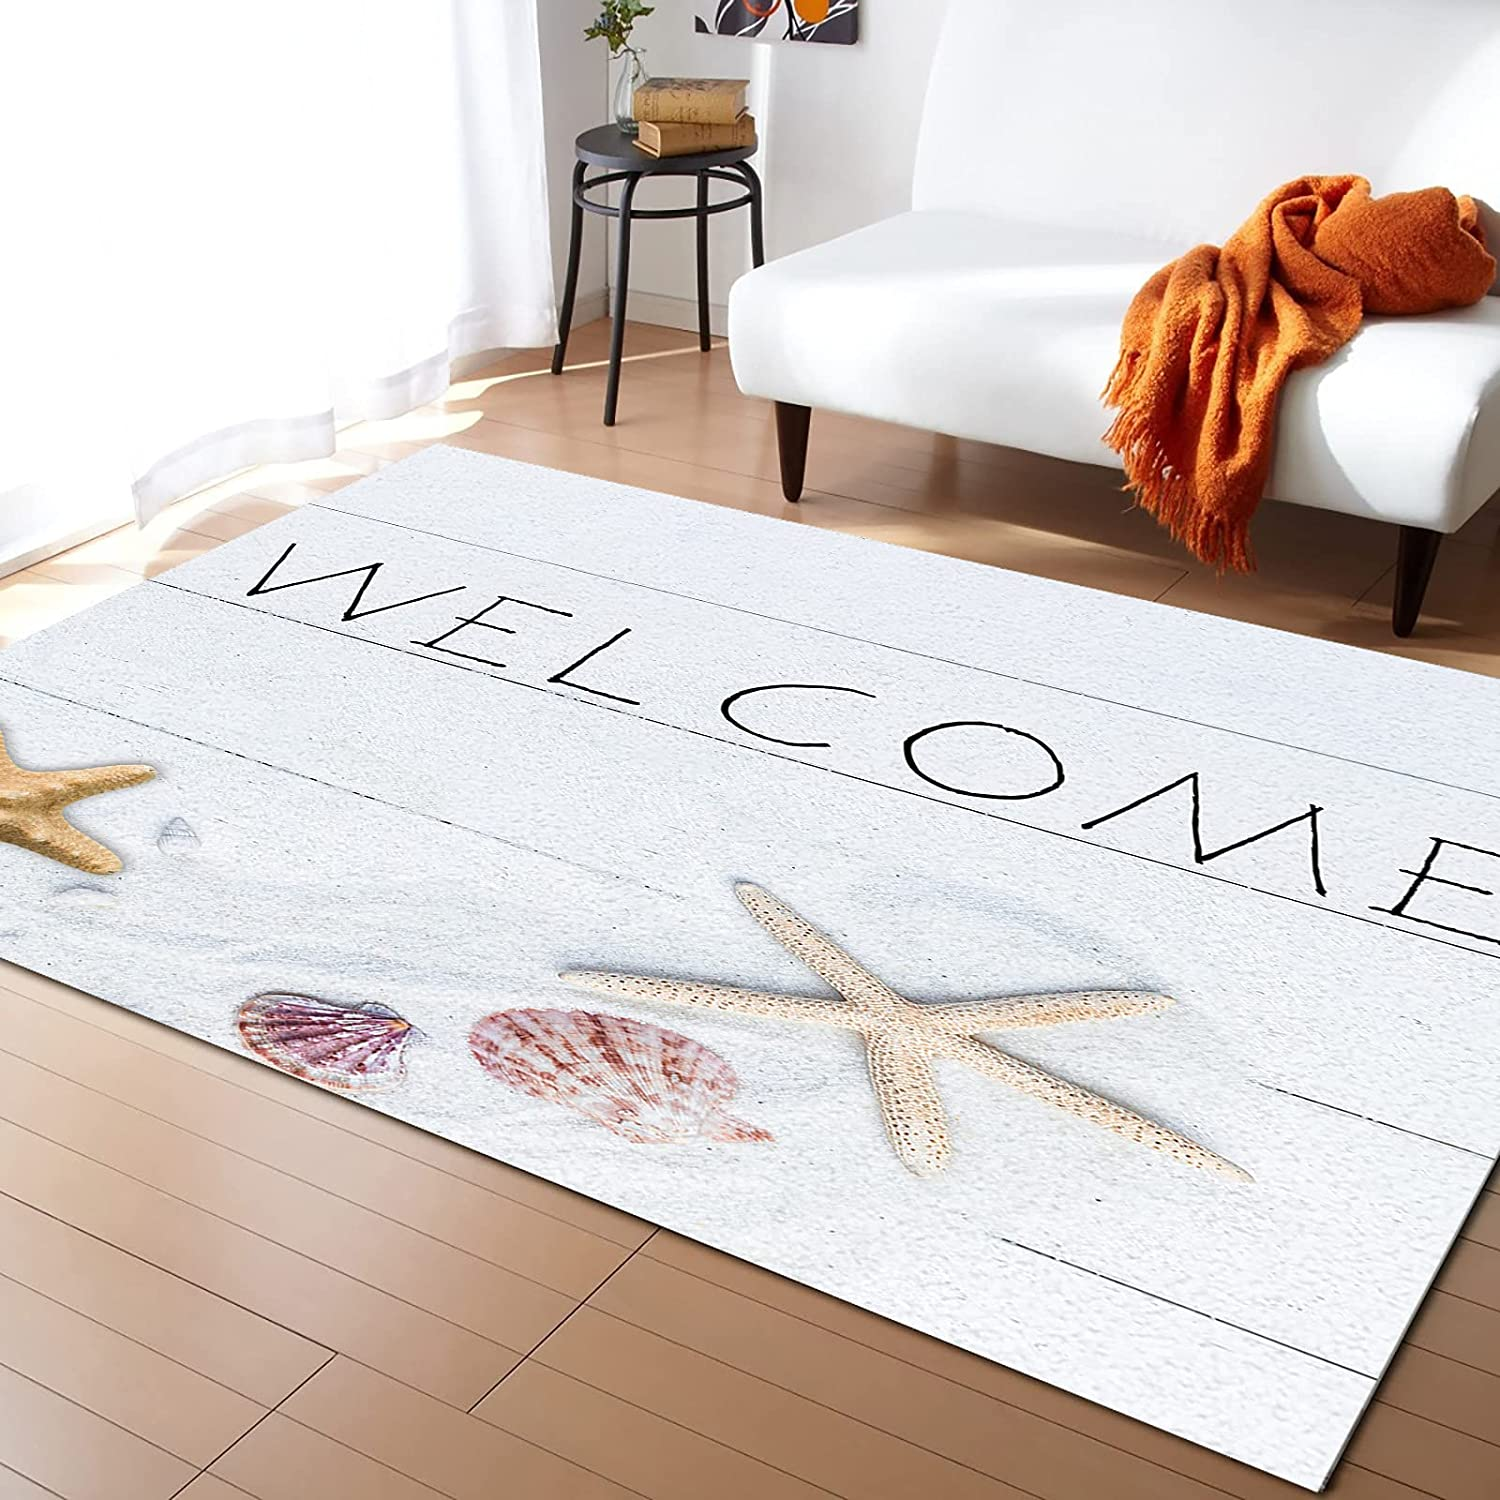 MuswannaA Area Rugs for Max 83% OFF Living Ocean Summer San Francisco Mall Room Bedroom Welcome